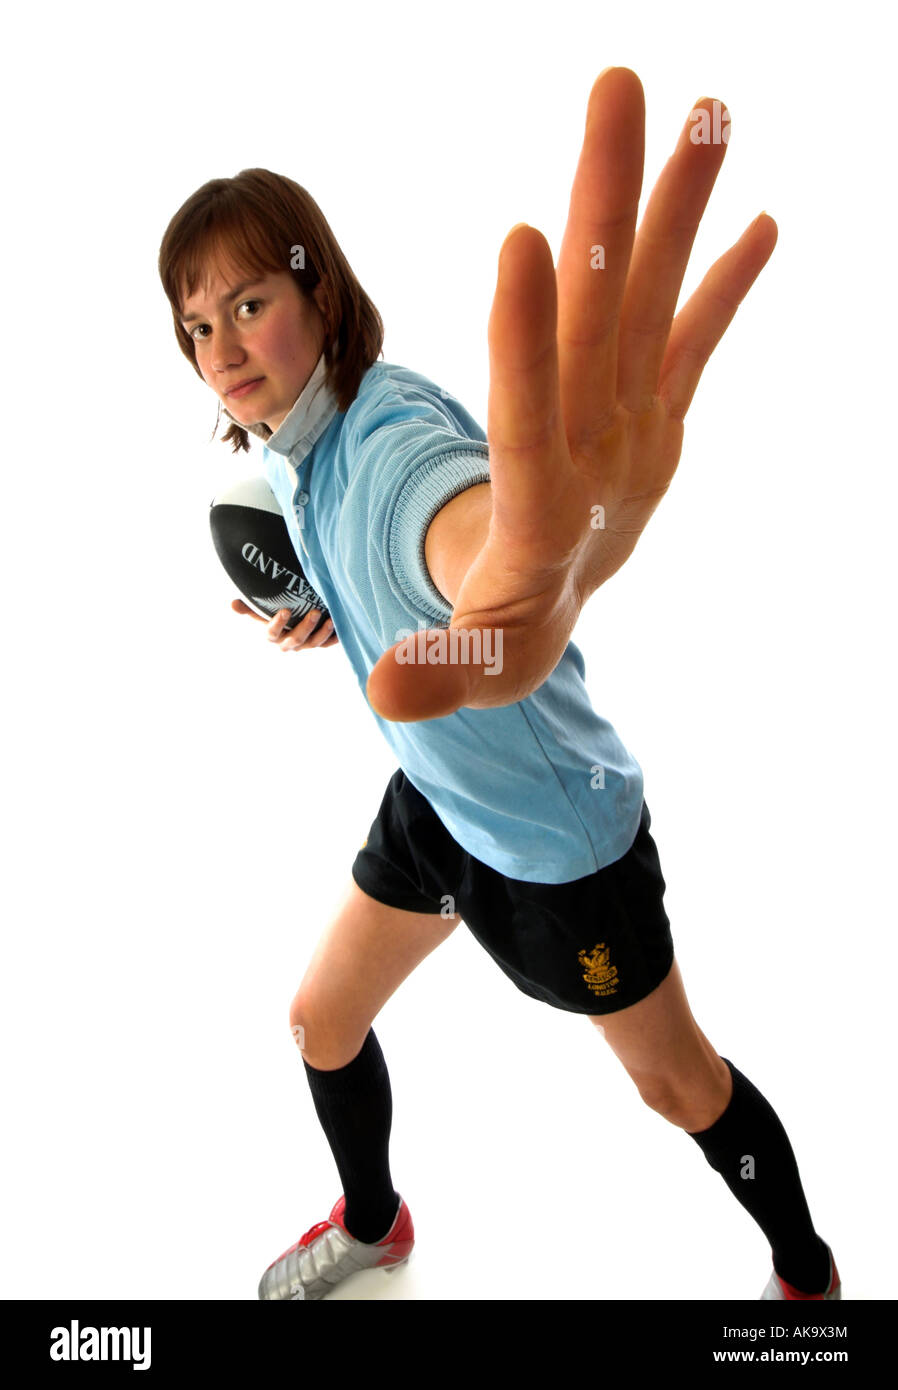 Fending Off concept in a young woman Rugby player demonstrating the handoff - Stock Image